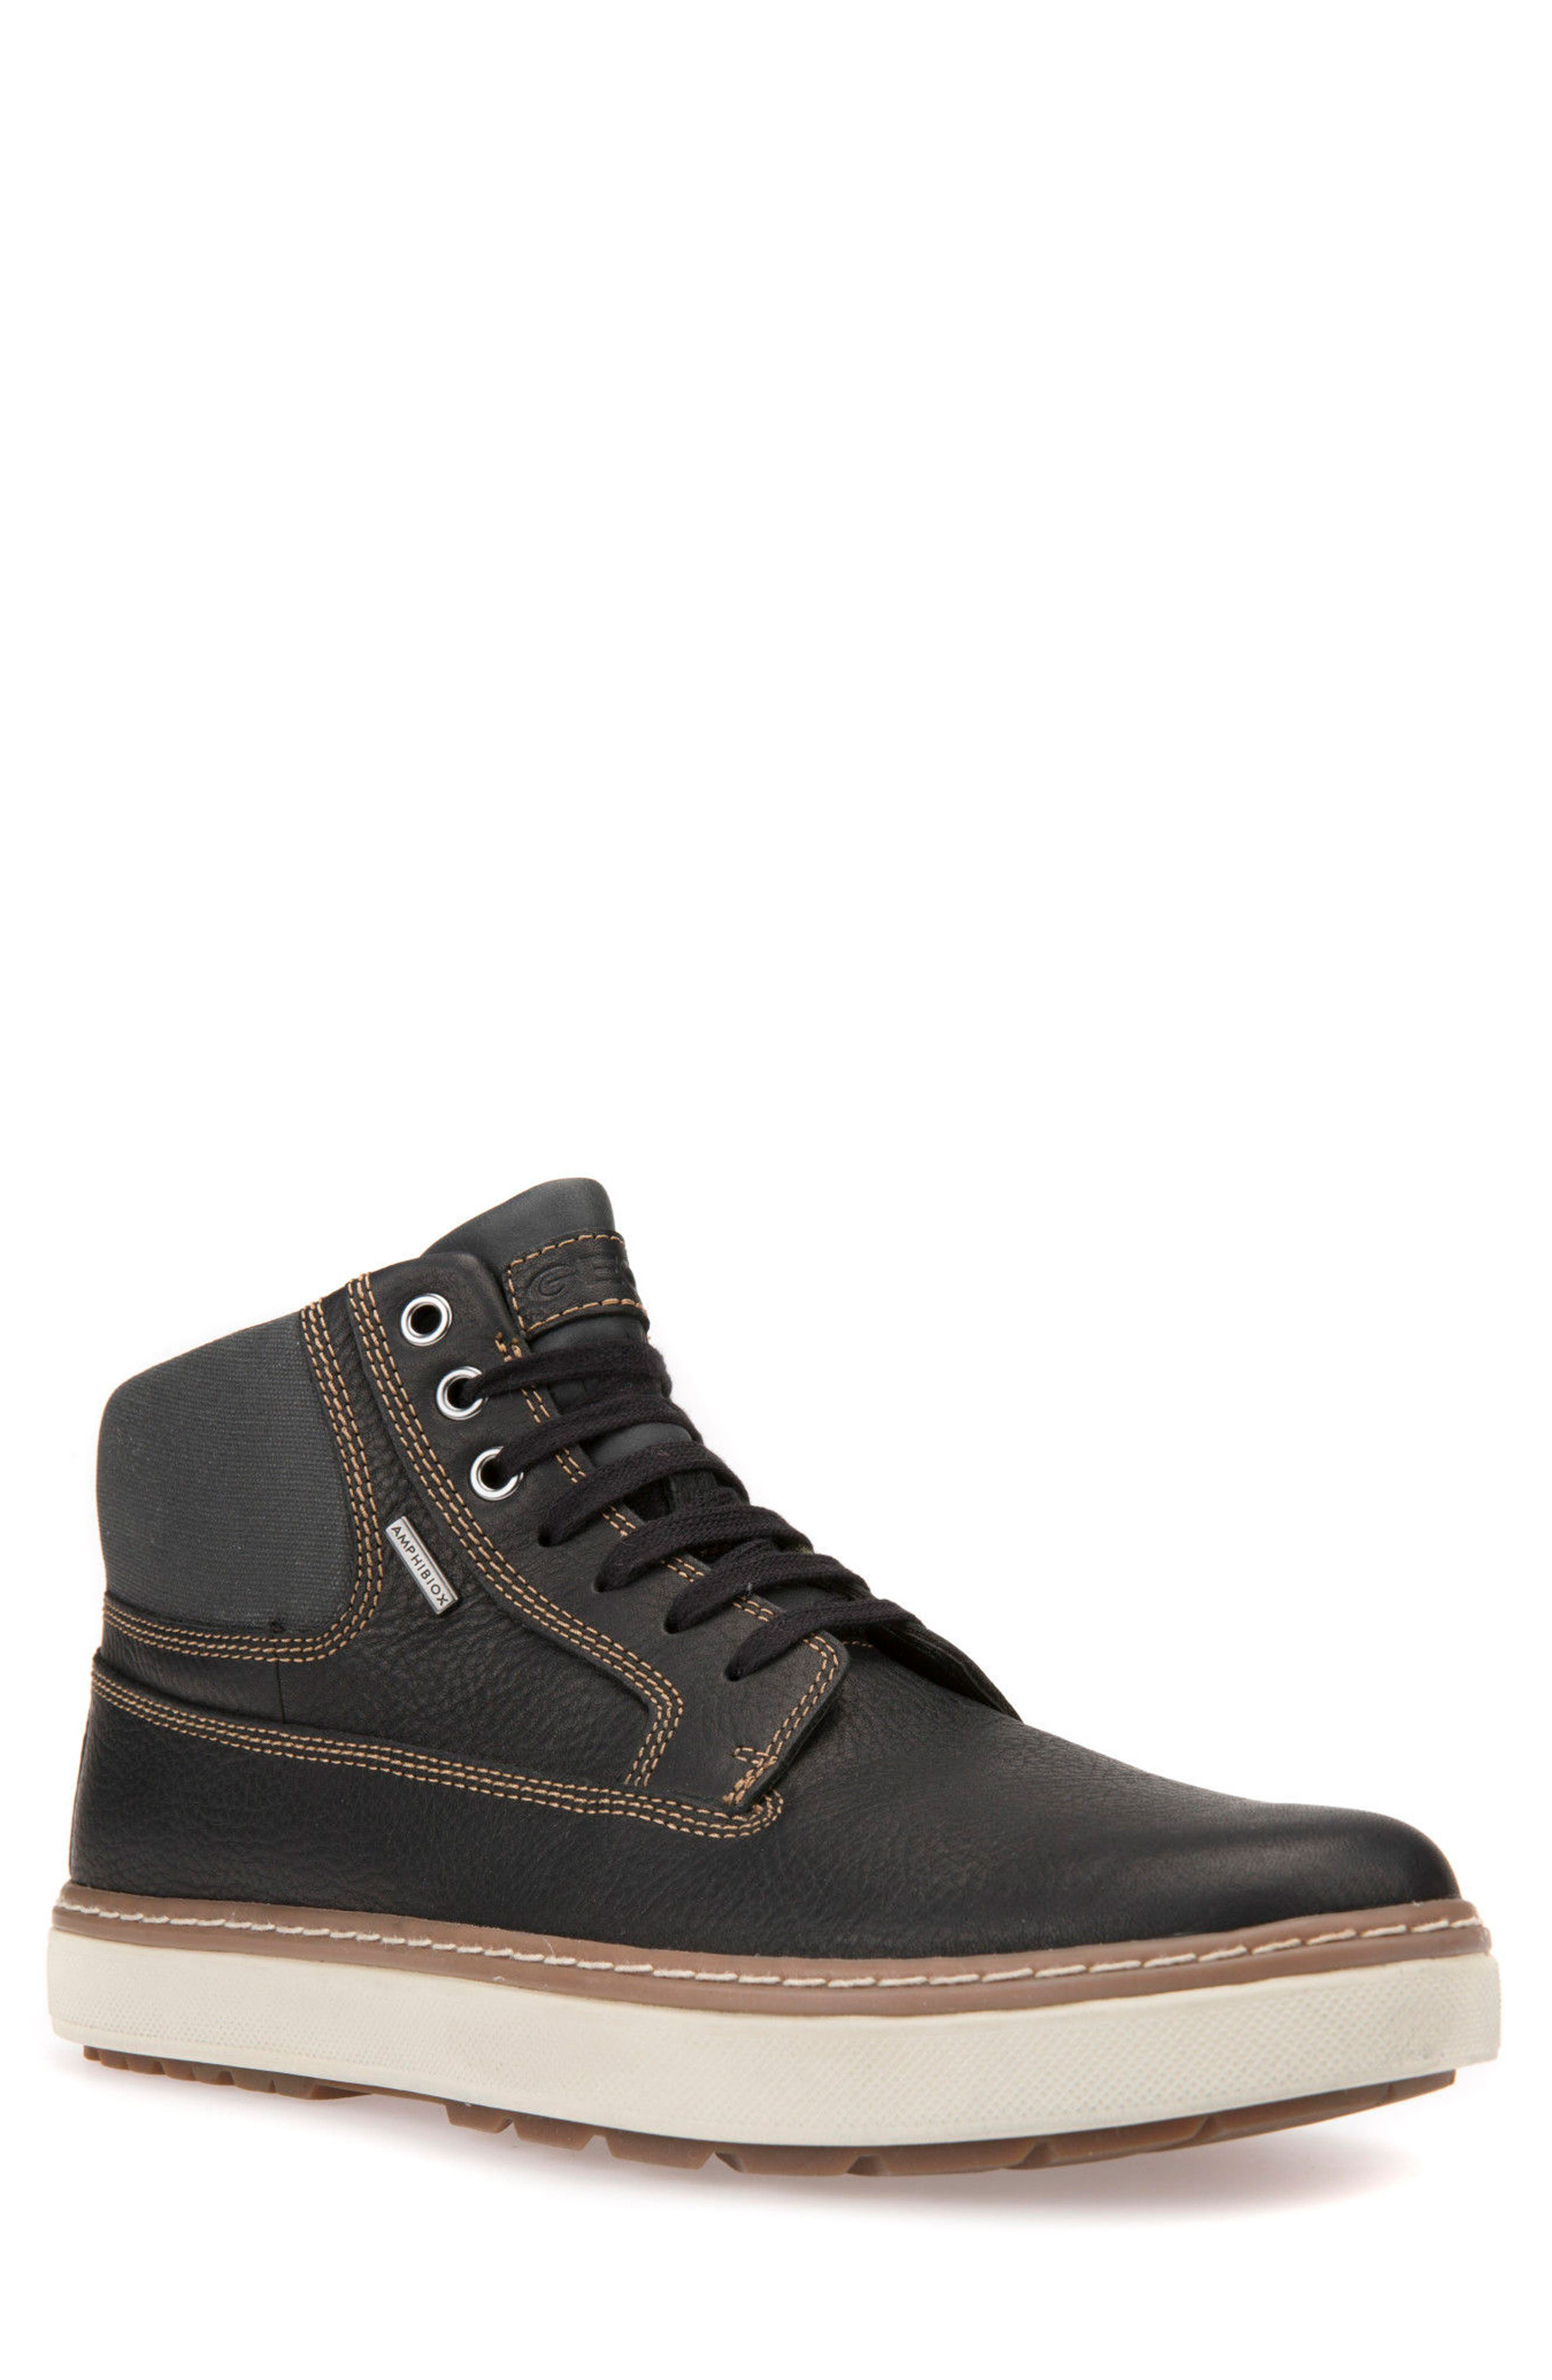 Alternate Image 1 Selected - Geox Mattias B ABX Waterproof Sneaker Boot (Men)